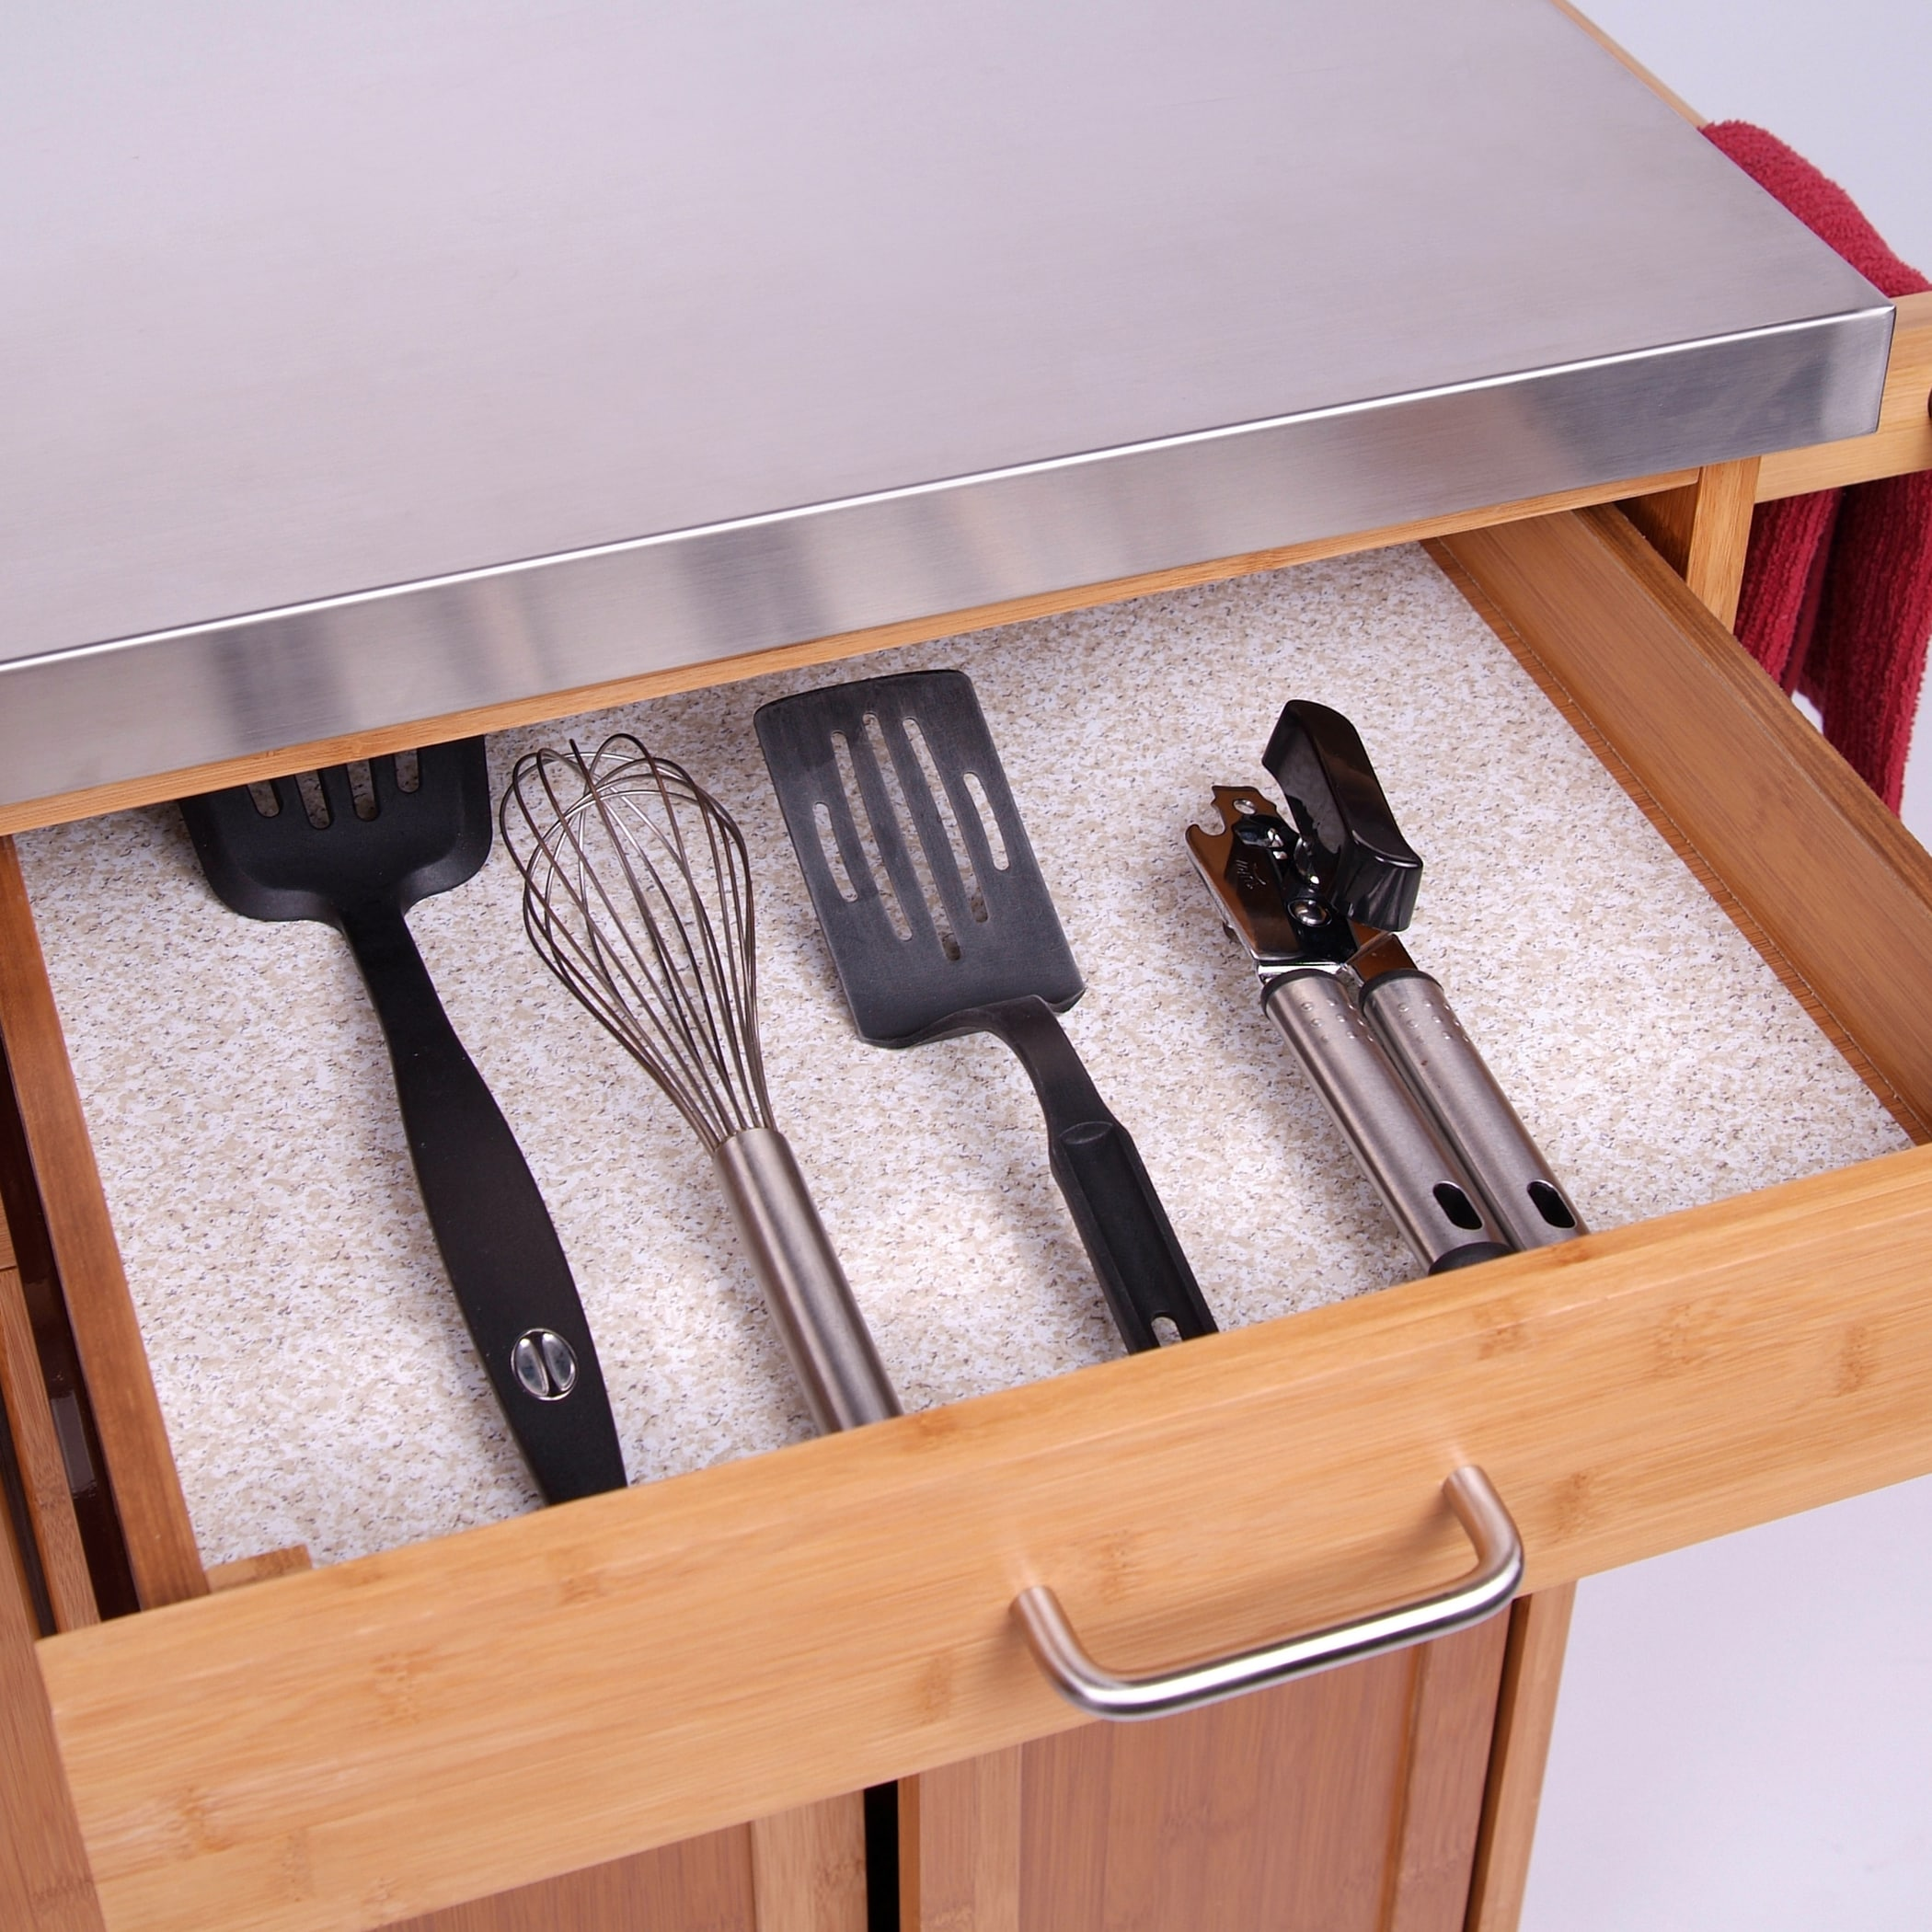 solutions of liner make drawer decoration in liners useful cabinet tolle adorable lining with on collection diy using refrigerator cupboard ideas kitchen over self